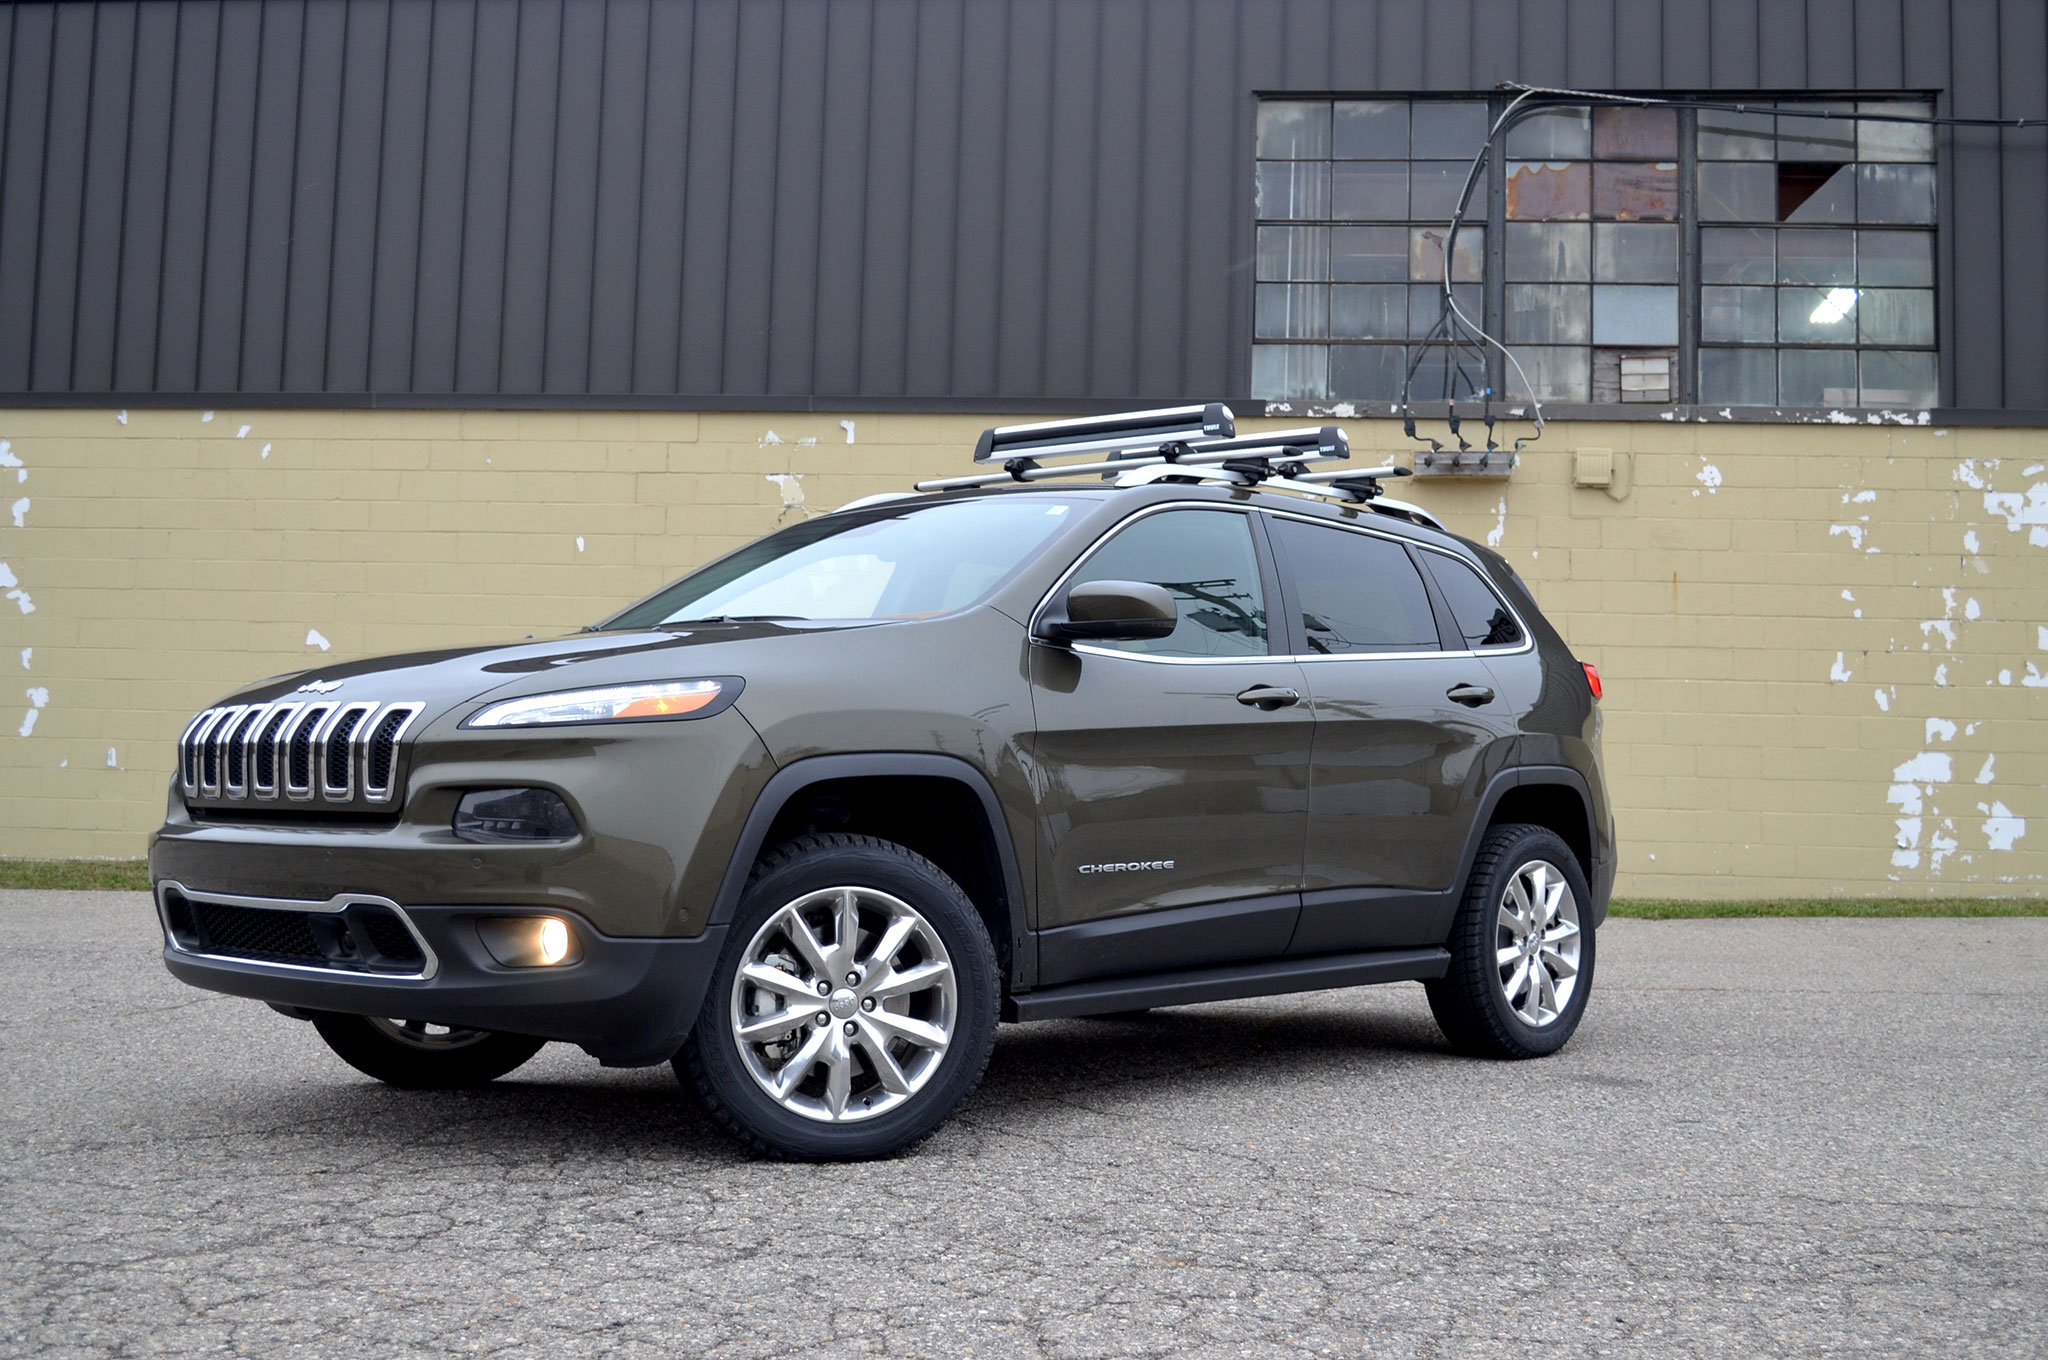 2014 Jeep Cherokee Limited - Winter Fear and Winter Gear